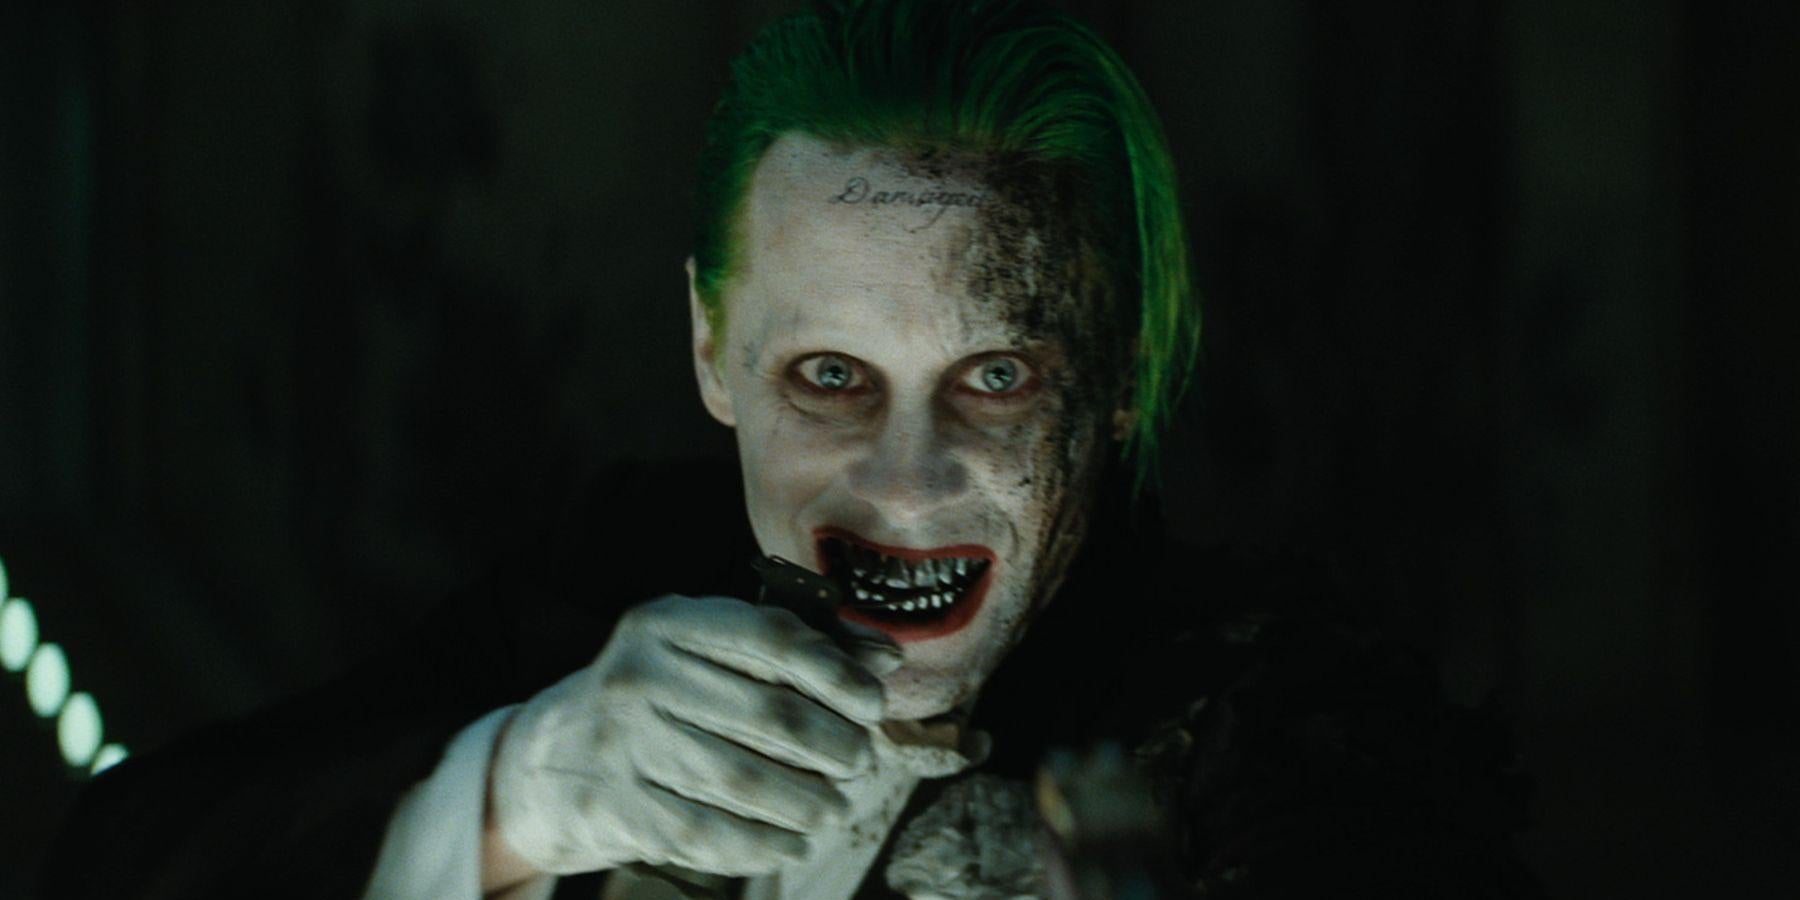 Suicide Squad: Every known deleted scene featuring the Joker | The Independent | The Independent